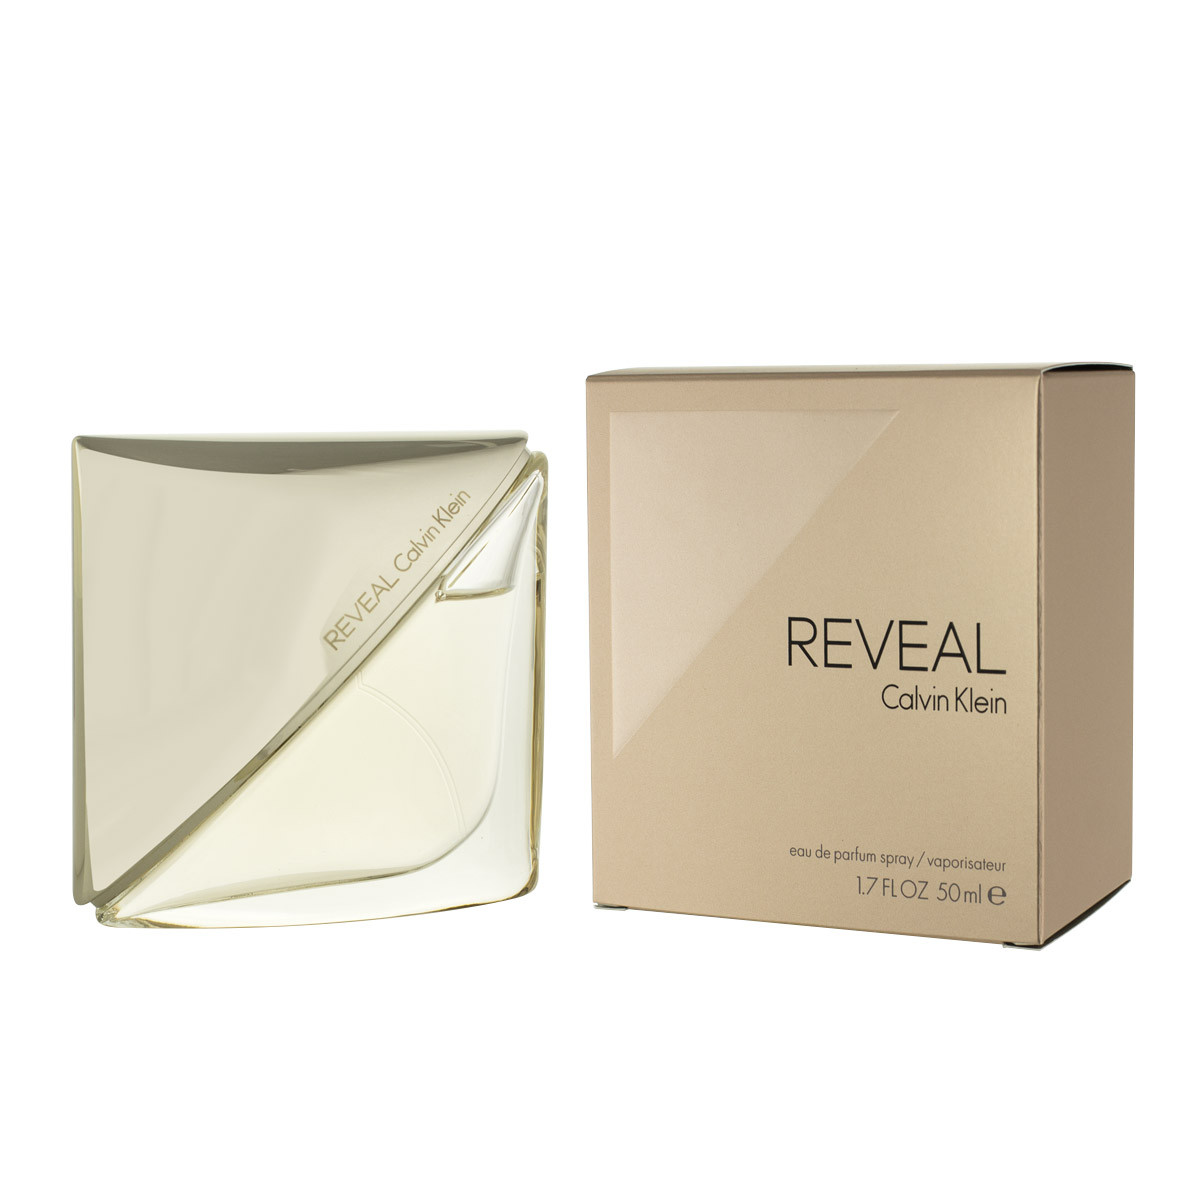 calvin klein reveal eau de parfum 50 ml woman reveal. Black Bedroom Furniture Sets. Home Design Ideas